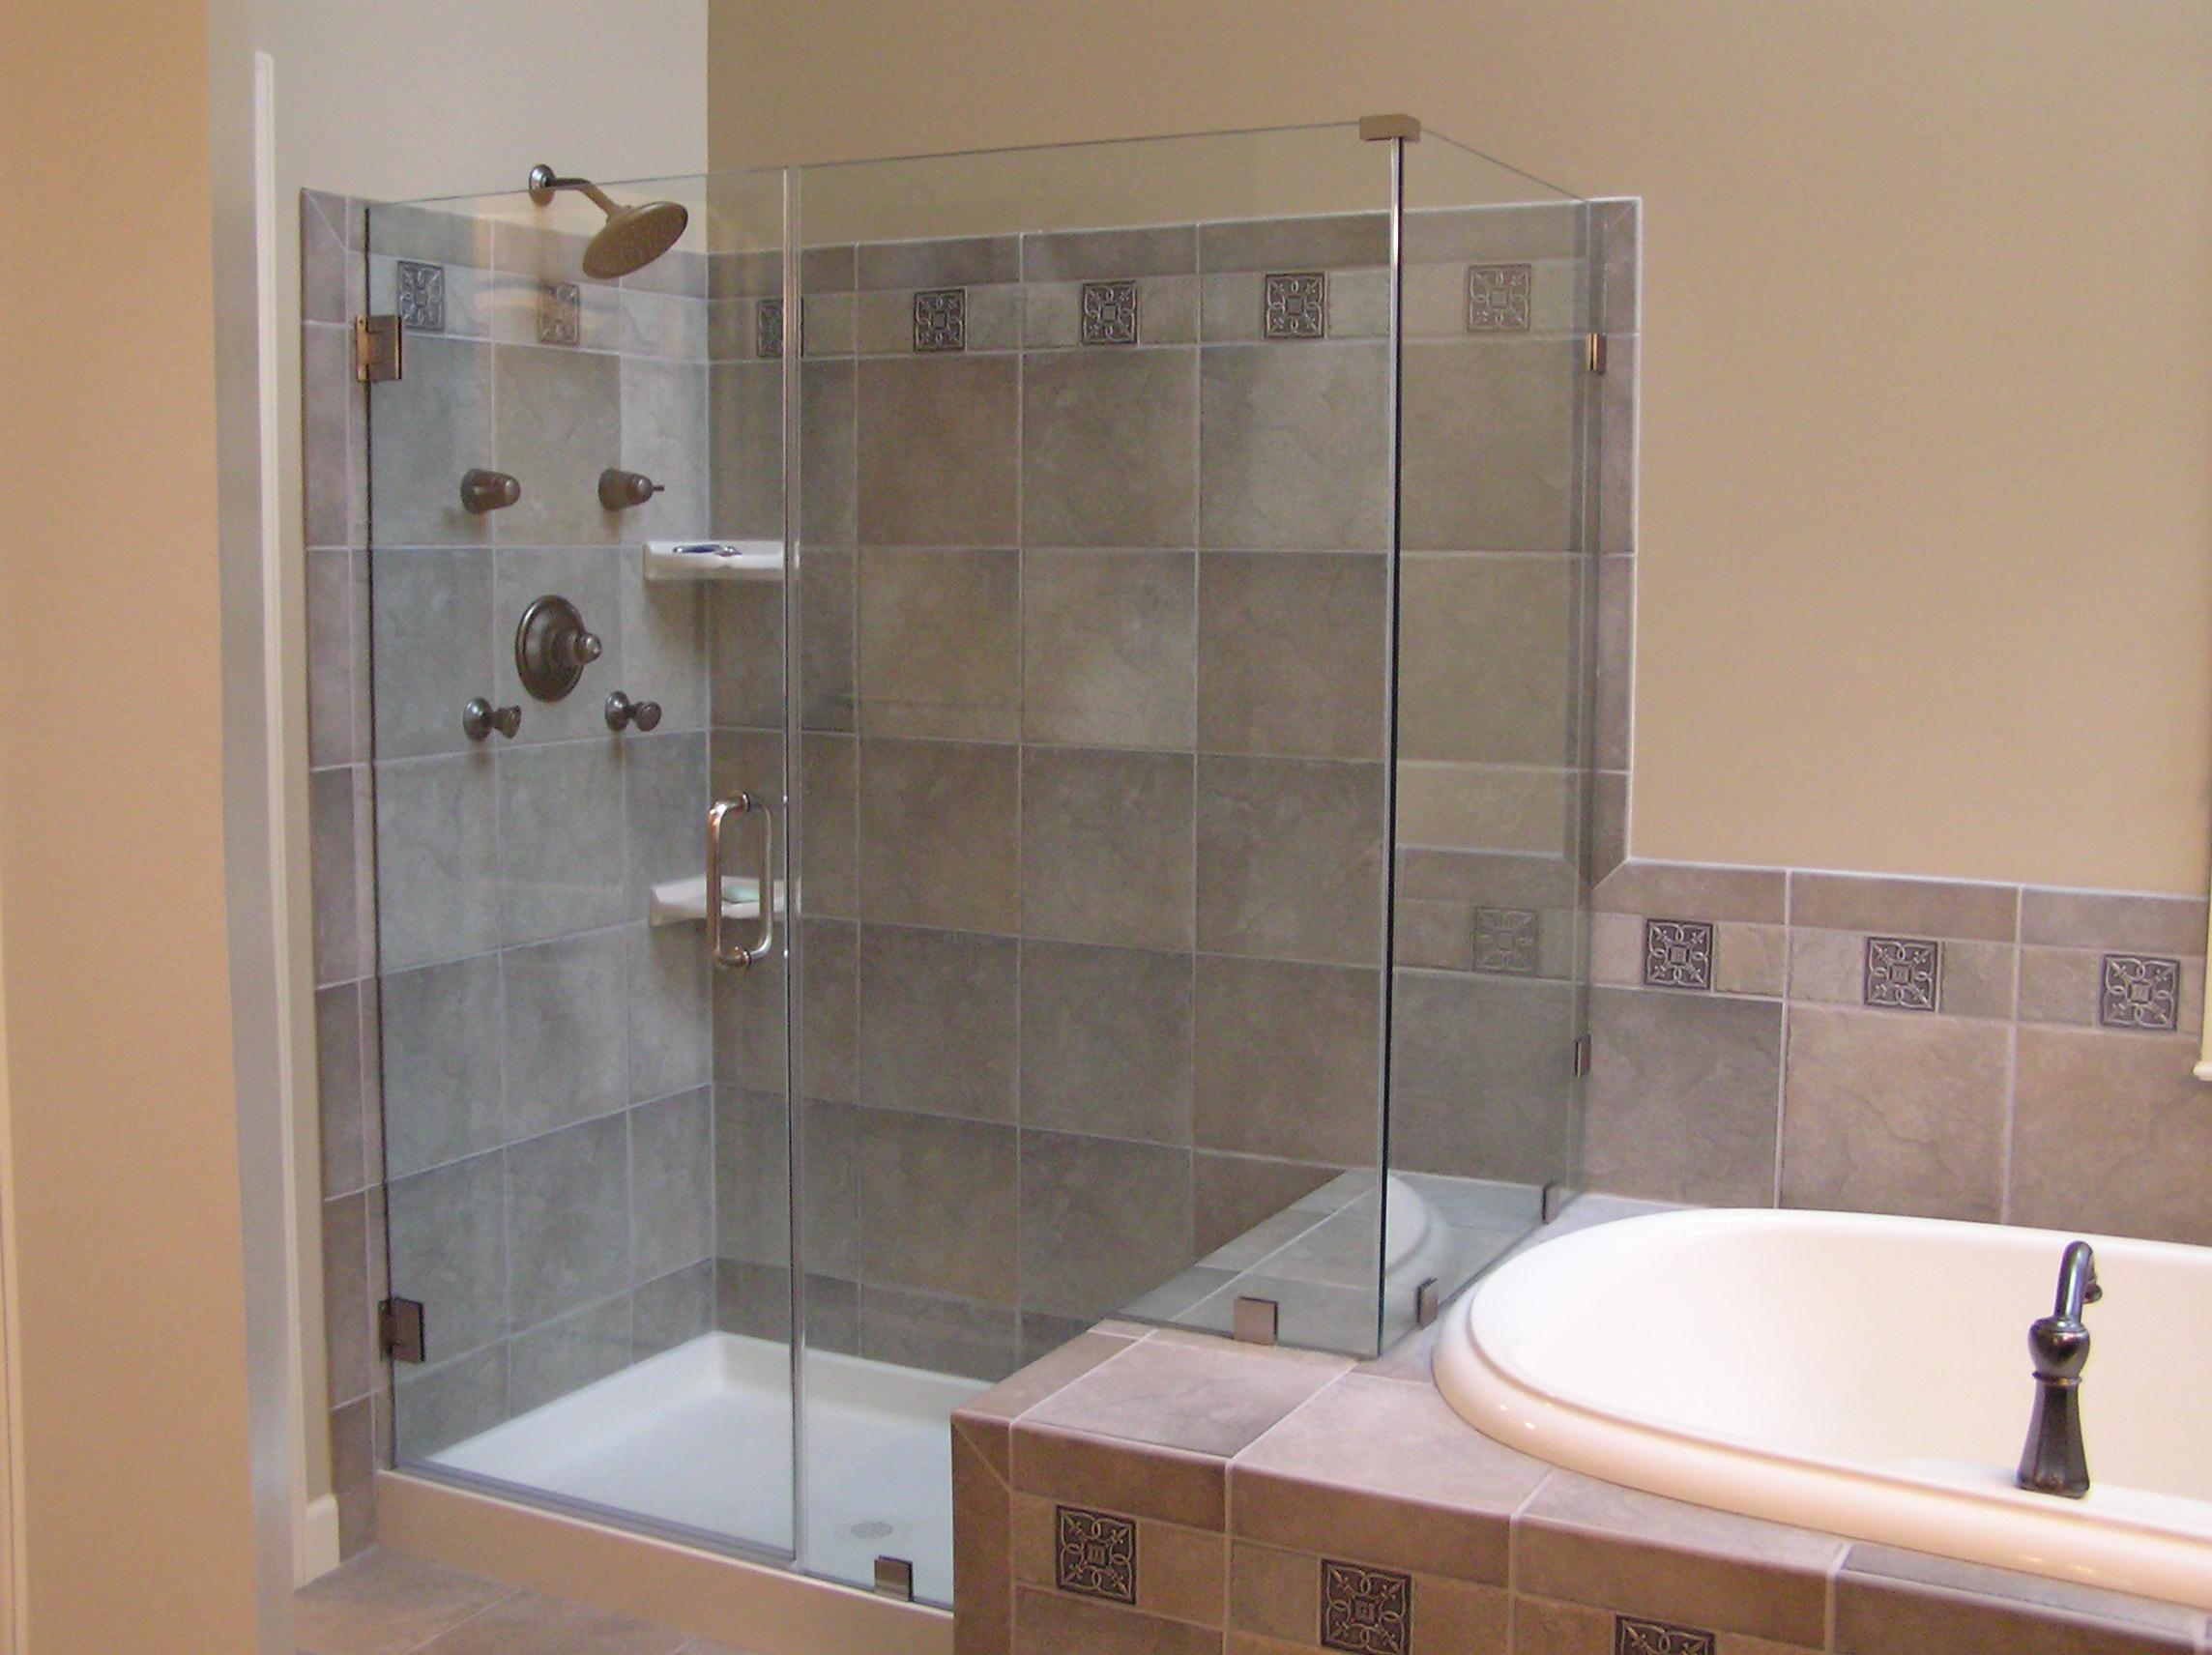 Average Small Bathroom Remodel Labor Cost bathroom remodel delaware - home improvement contractors